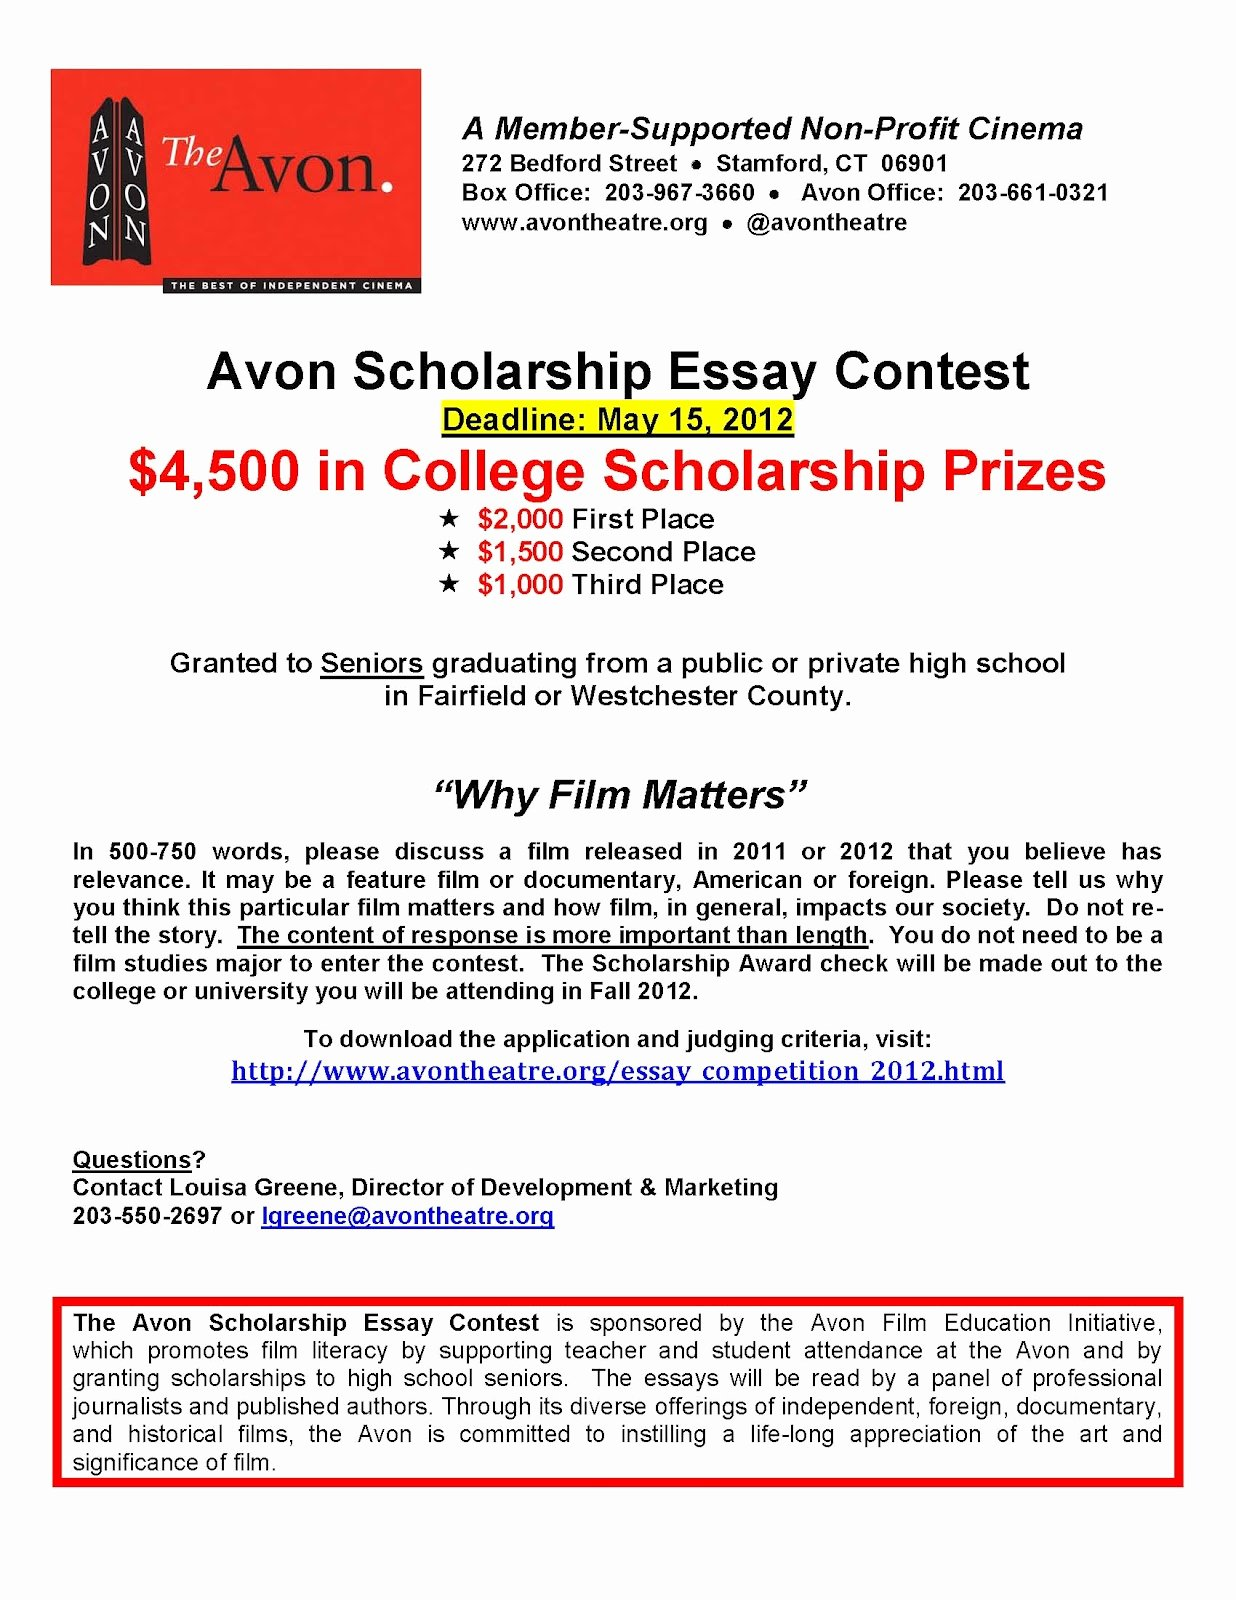 High School Scholarship Essay Examples Beautiful Stamford Downtown events Avon Film Essay Contest